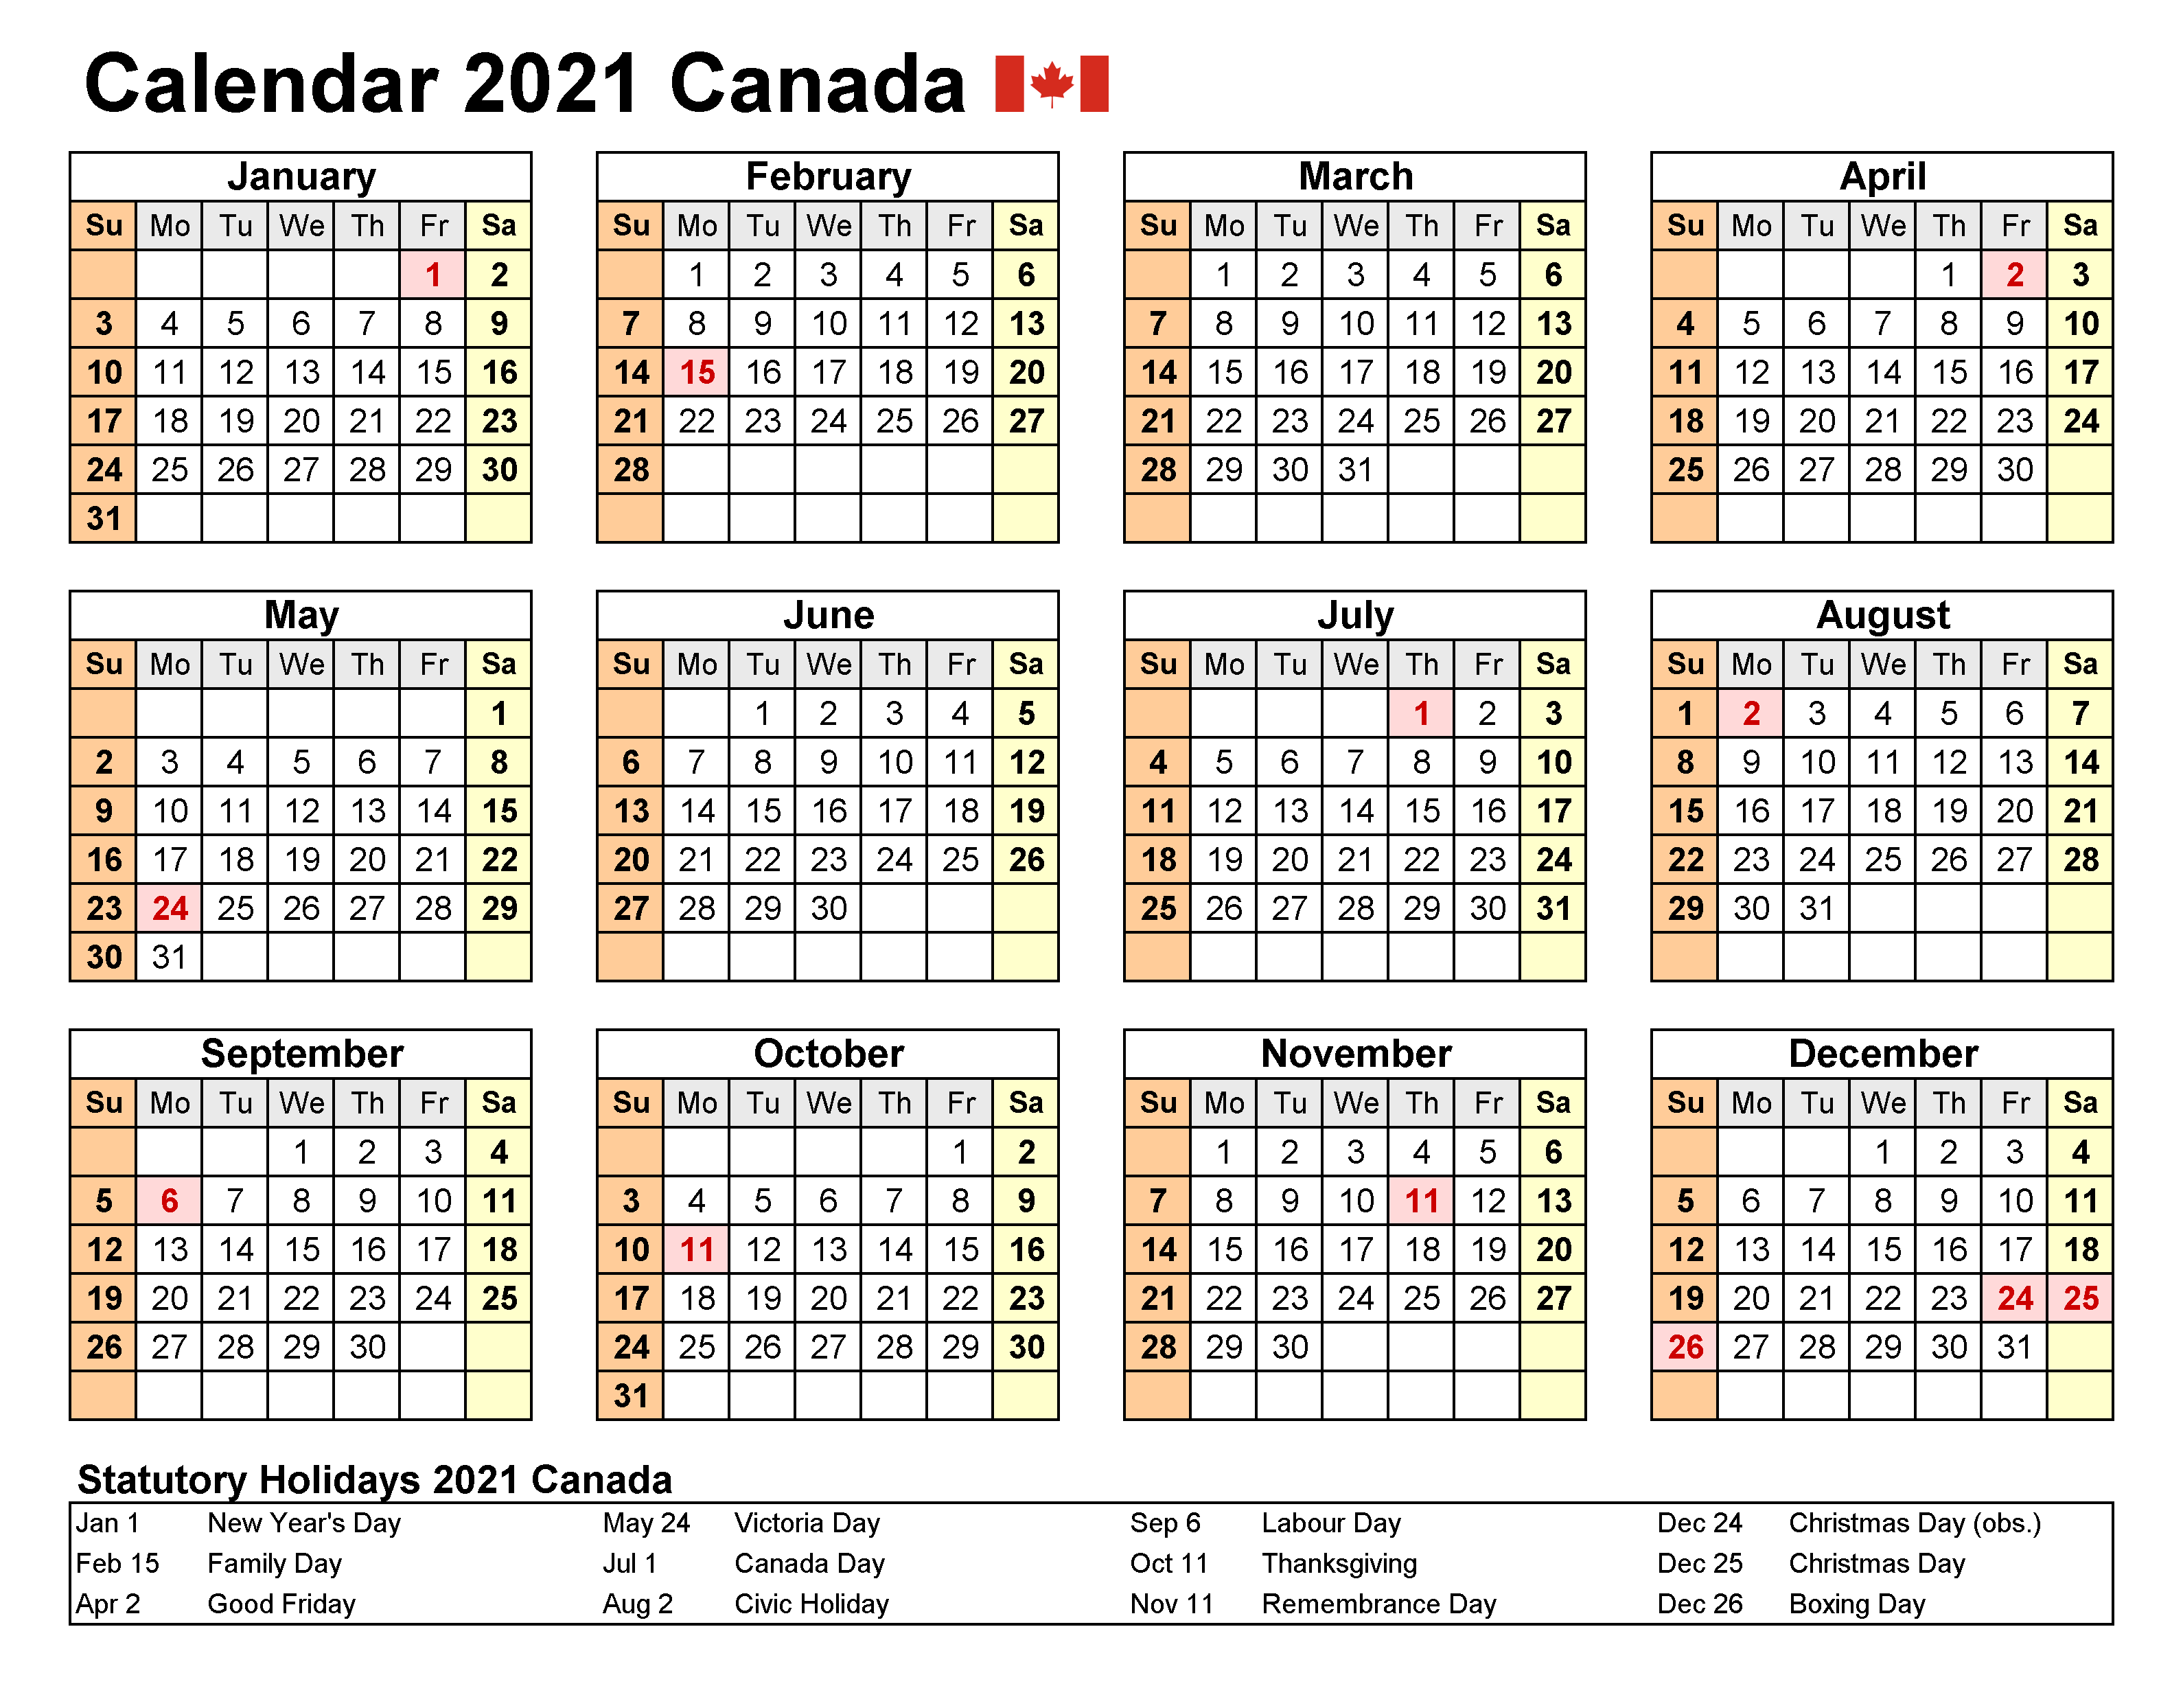 Canada Calendar 2021 with Holidays